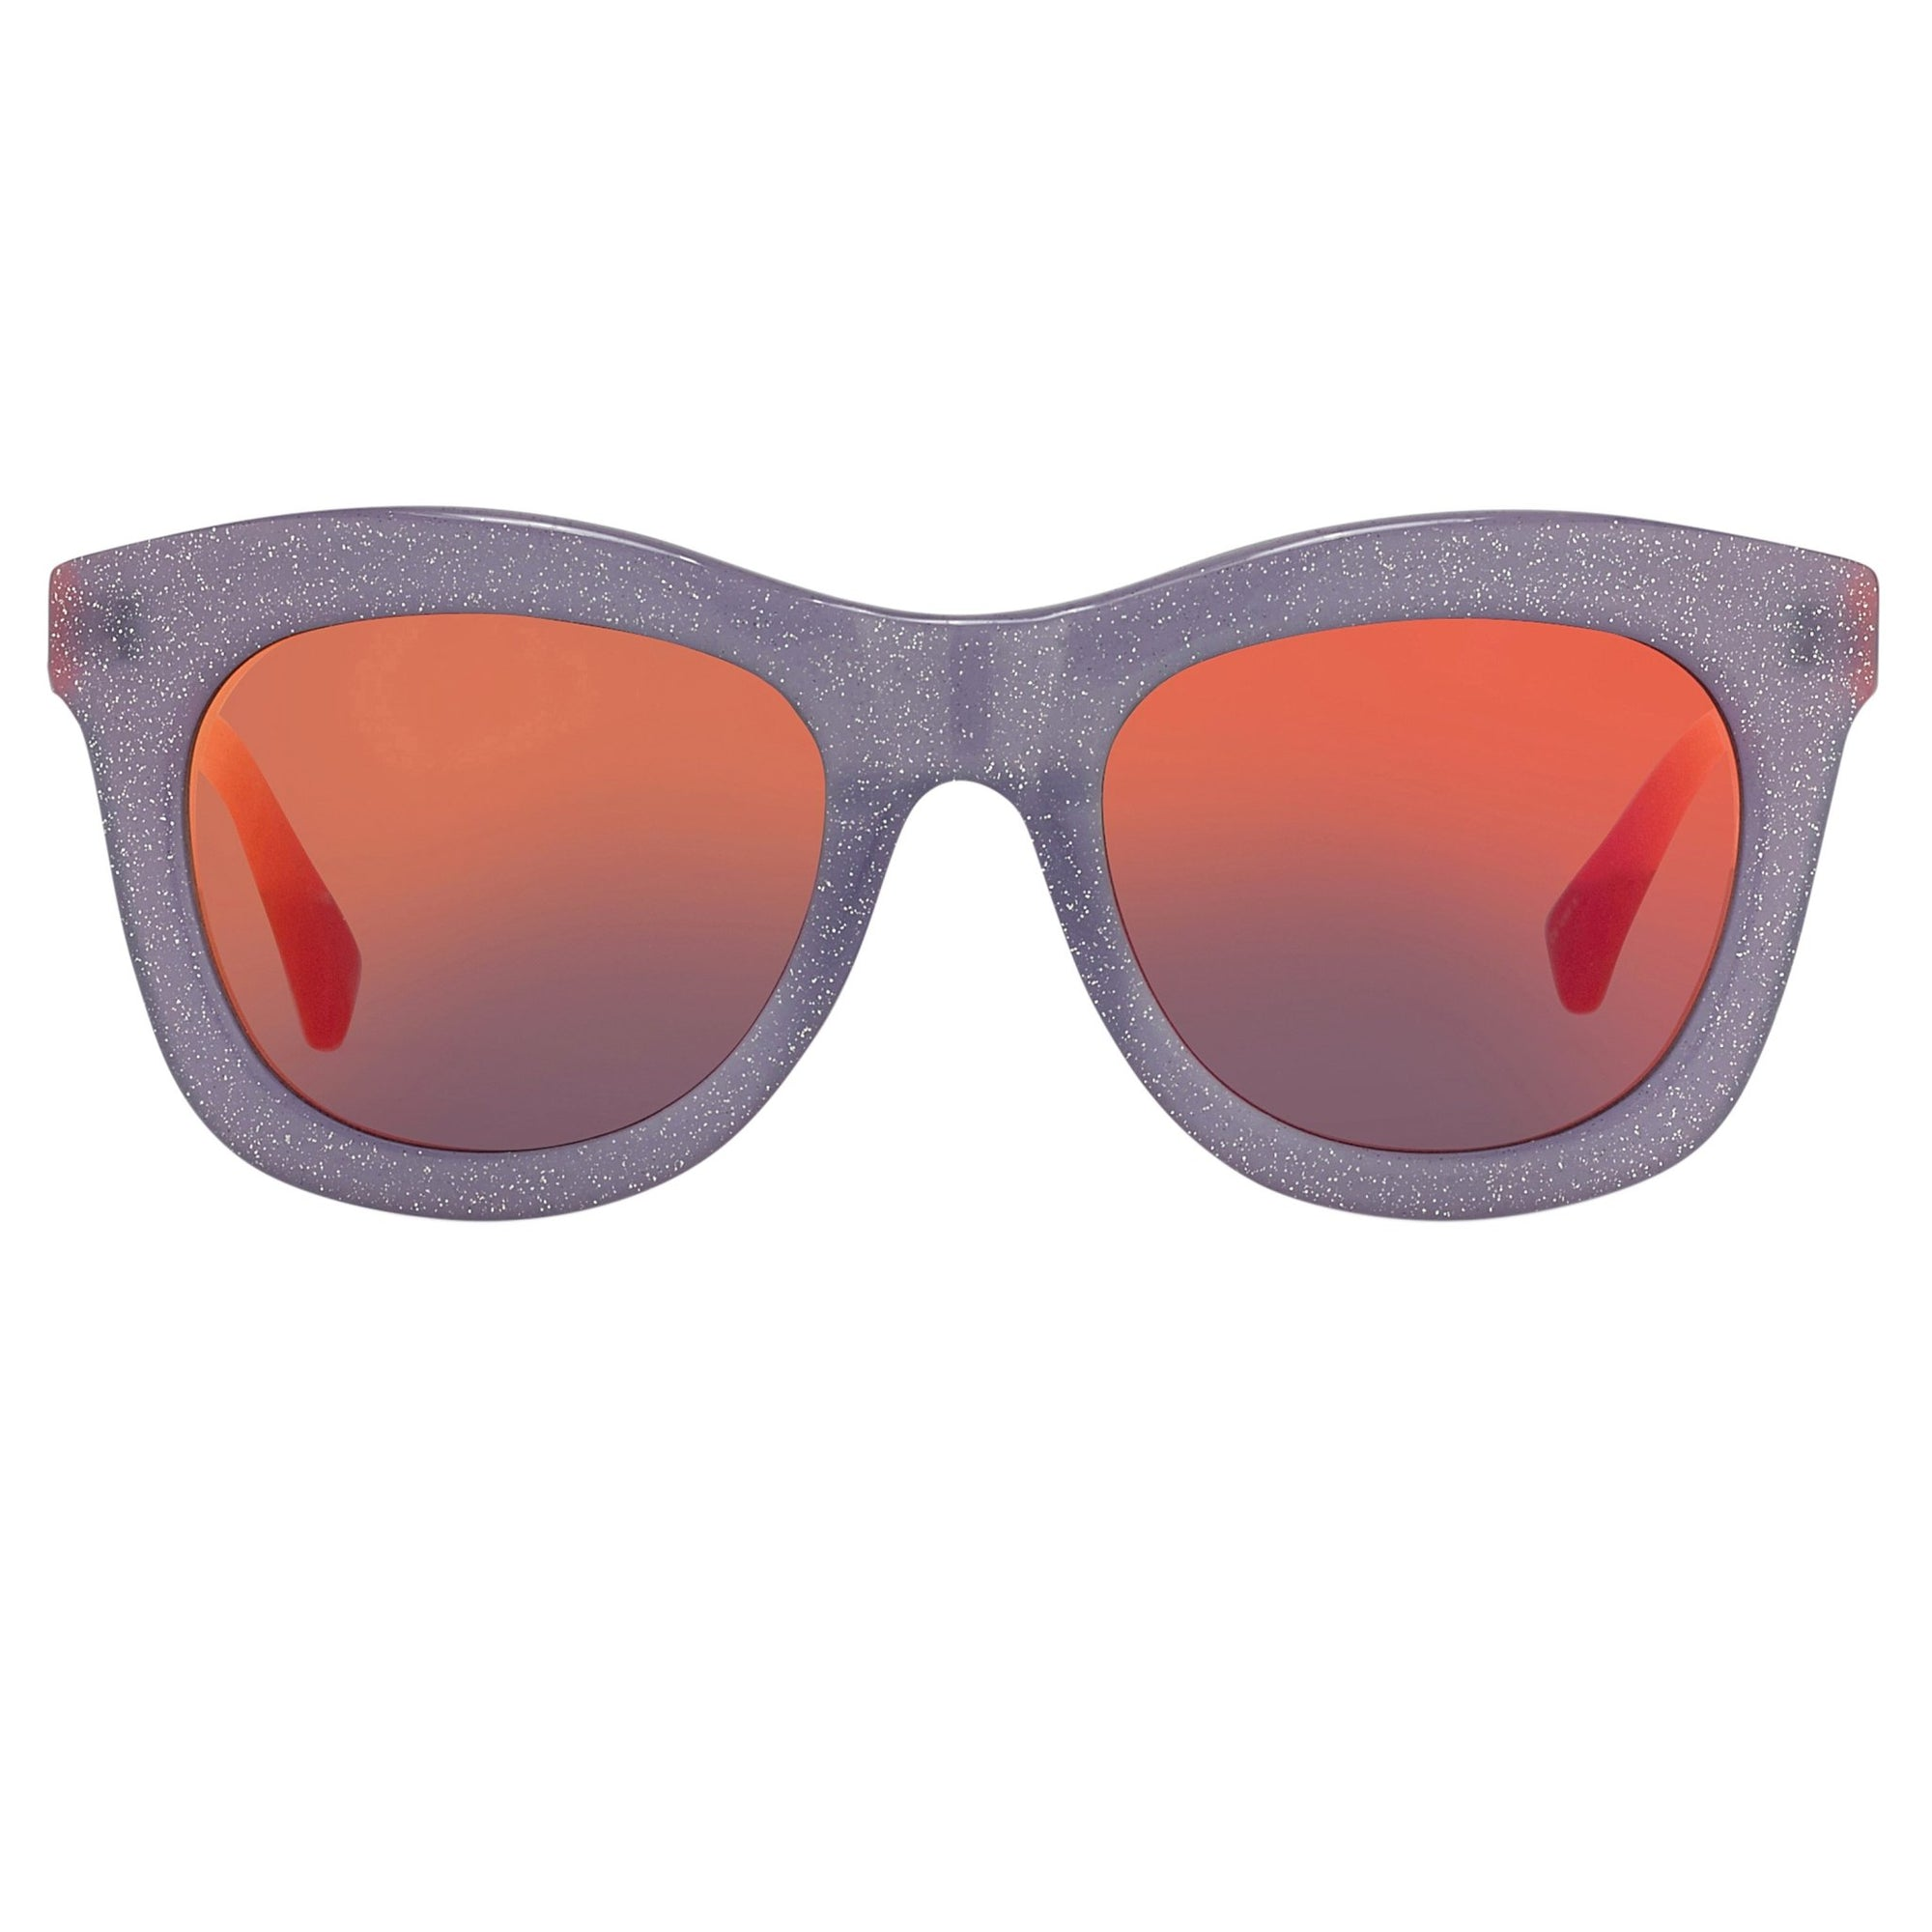 Markus Lupfer Sunglasses D-Frame Lilac Glitter Neon Orange Lenses Category 3 Dark Tint ML5C5SUN - Watches & Crystals